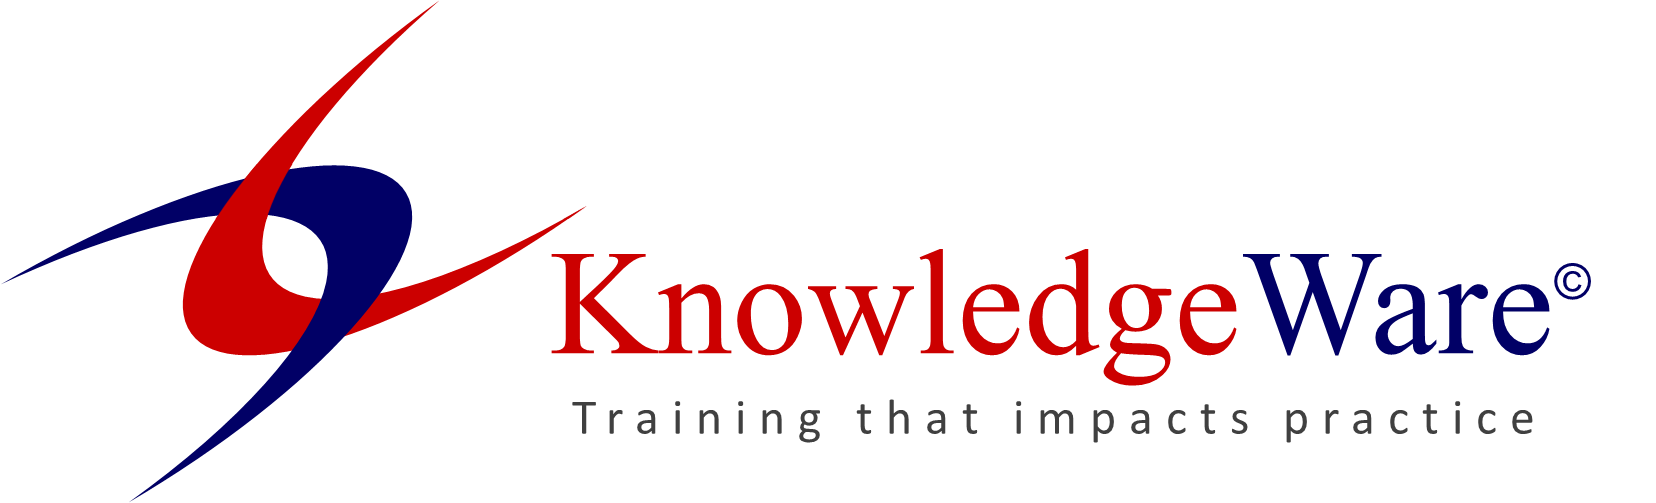 KnowledgeWare